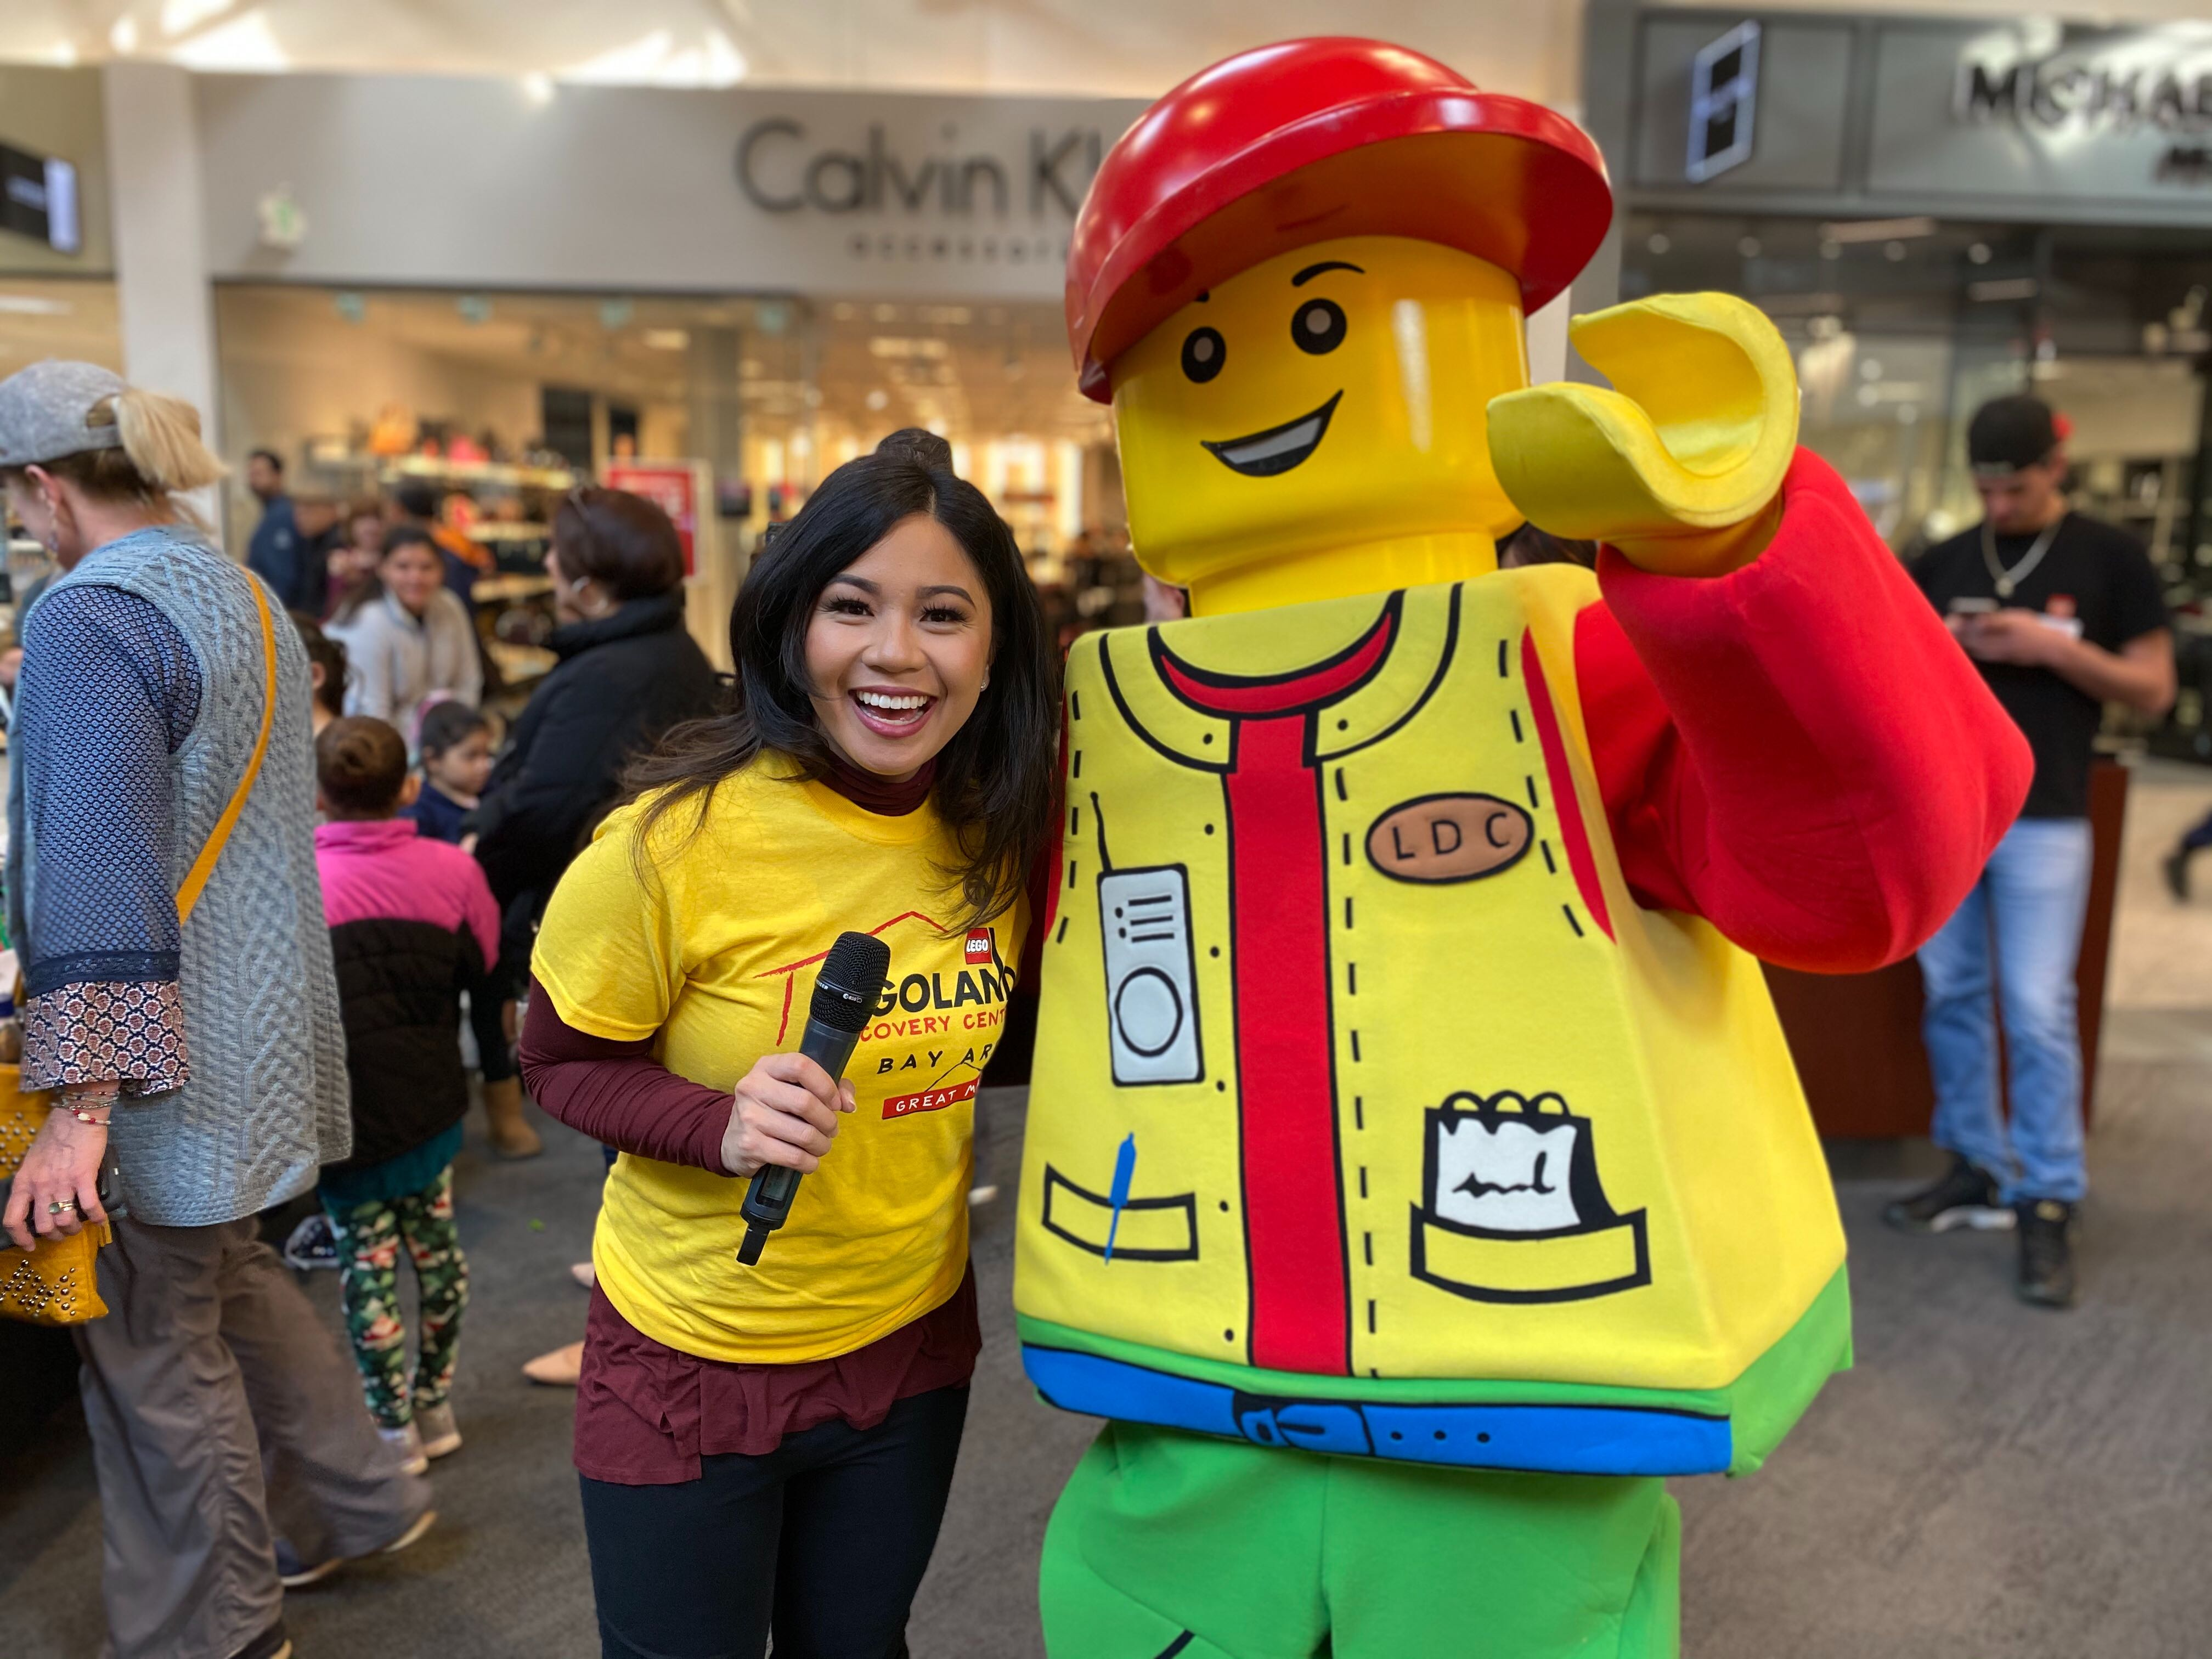 ABC7 News' Amanda del Castillo emcees for the LEGO brick competition at Legoland's Discovery Center inside the Great Mall in Milpitas on Jan. 18, 2020.